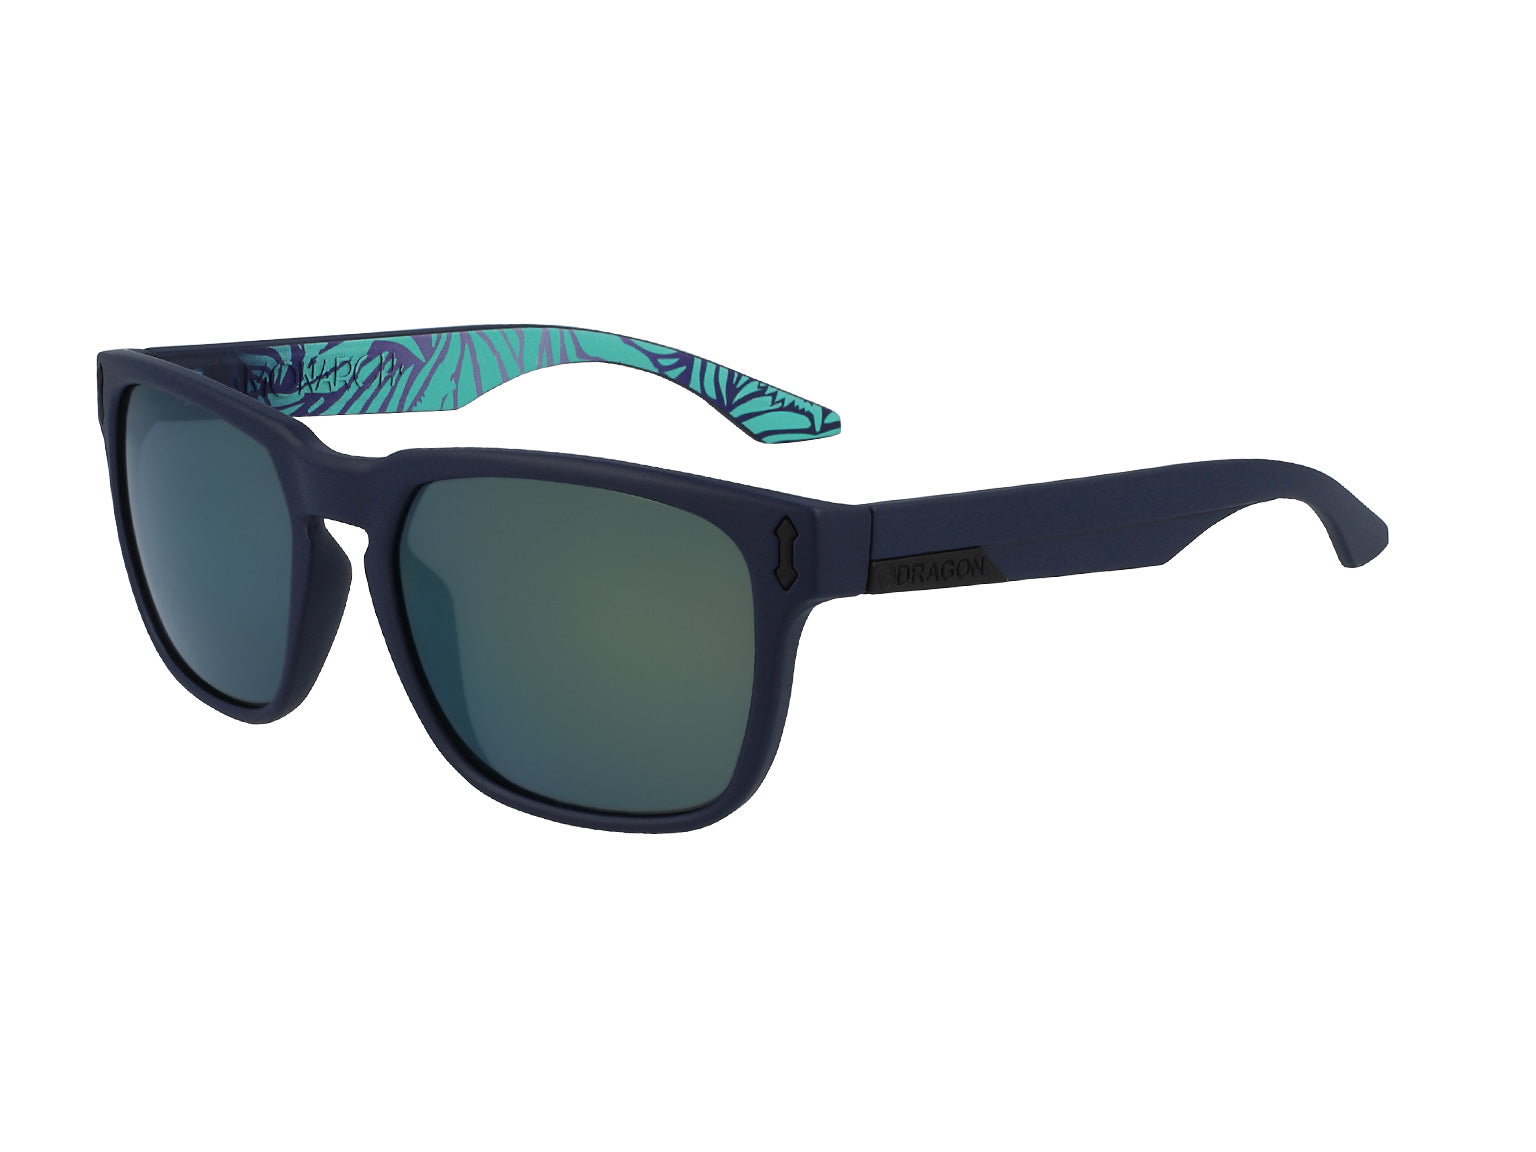 MONARCH - Matte Navy/Tropics ; with Lumalens Smoke Petrol Ionized Lens